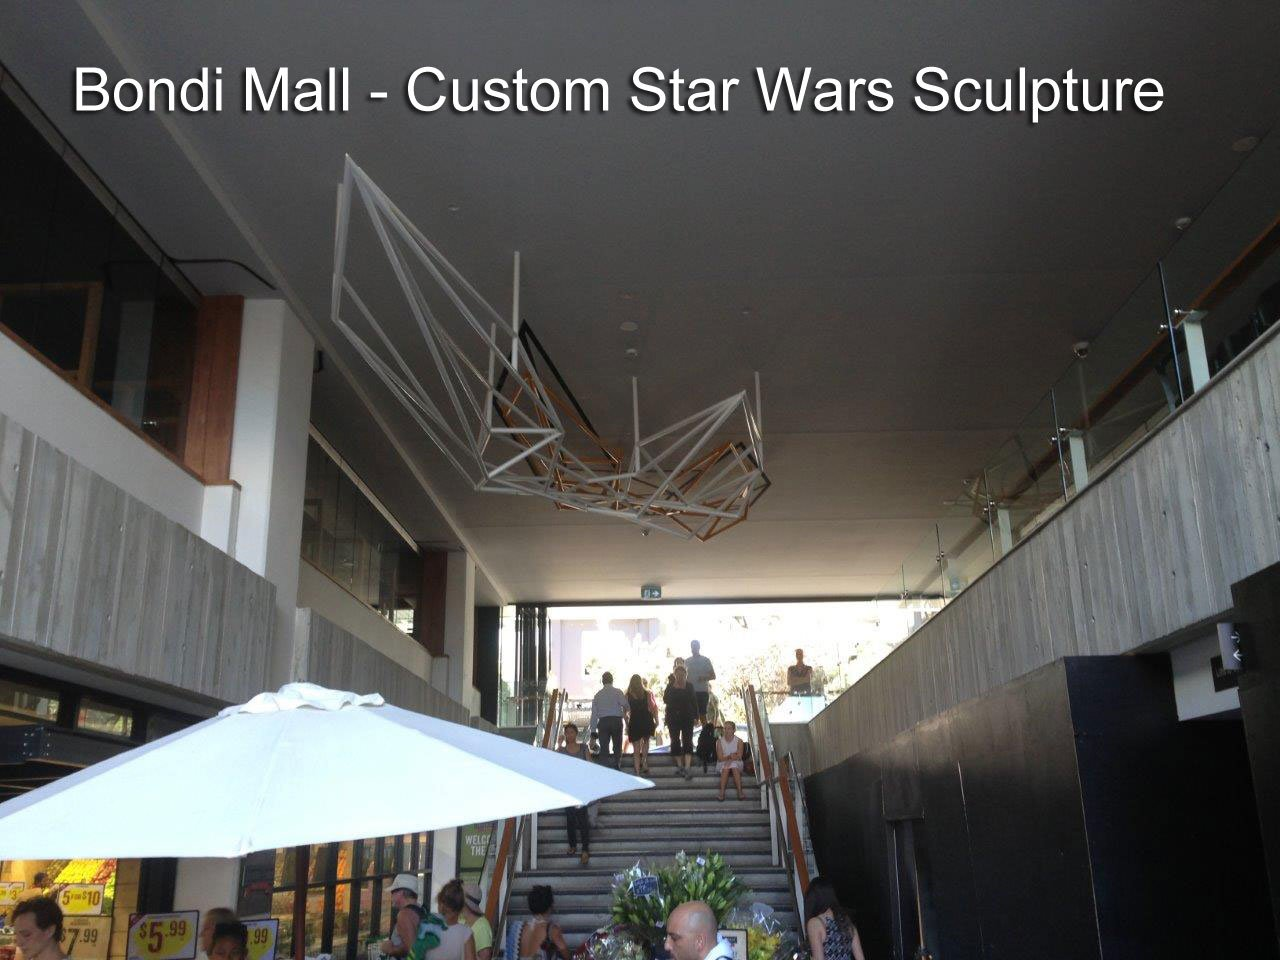 bondi-mall-custom-star-wars-sculpture-2